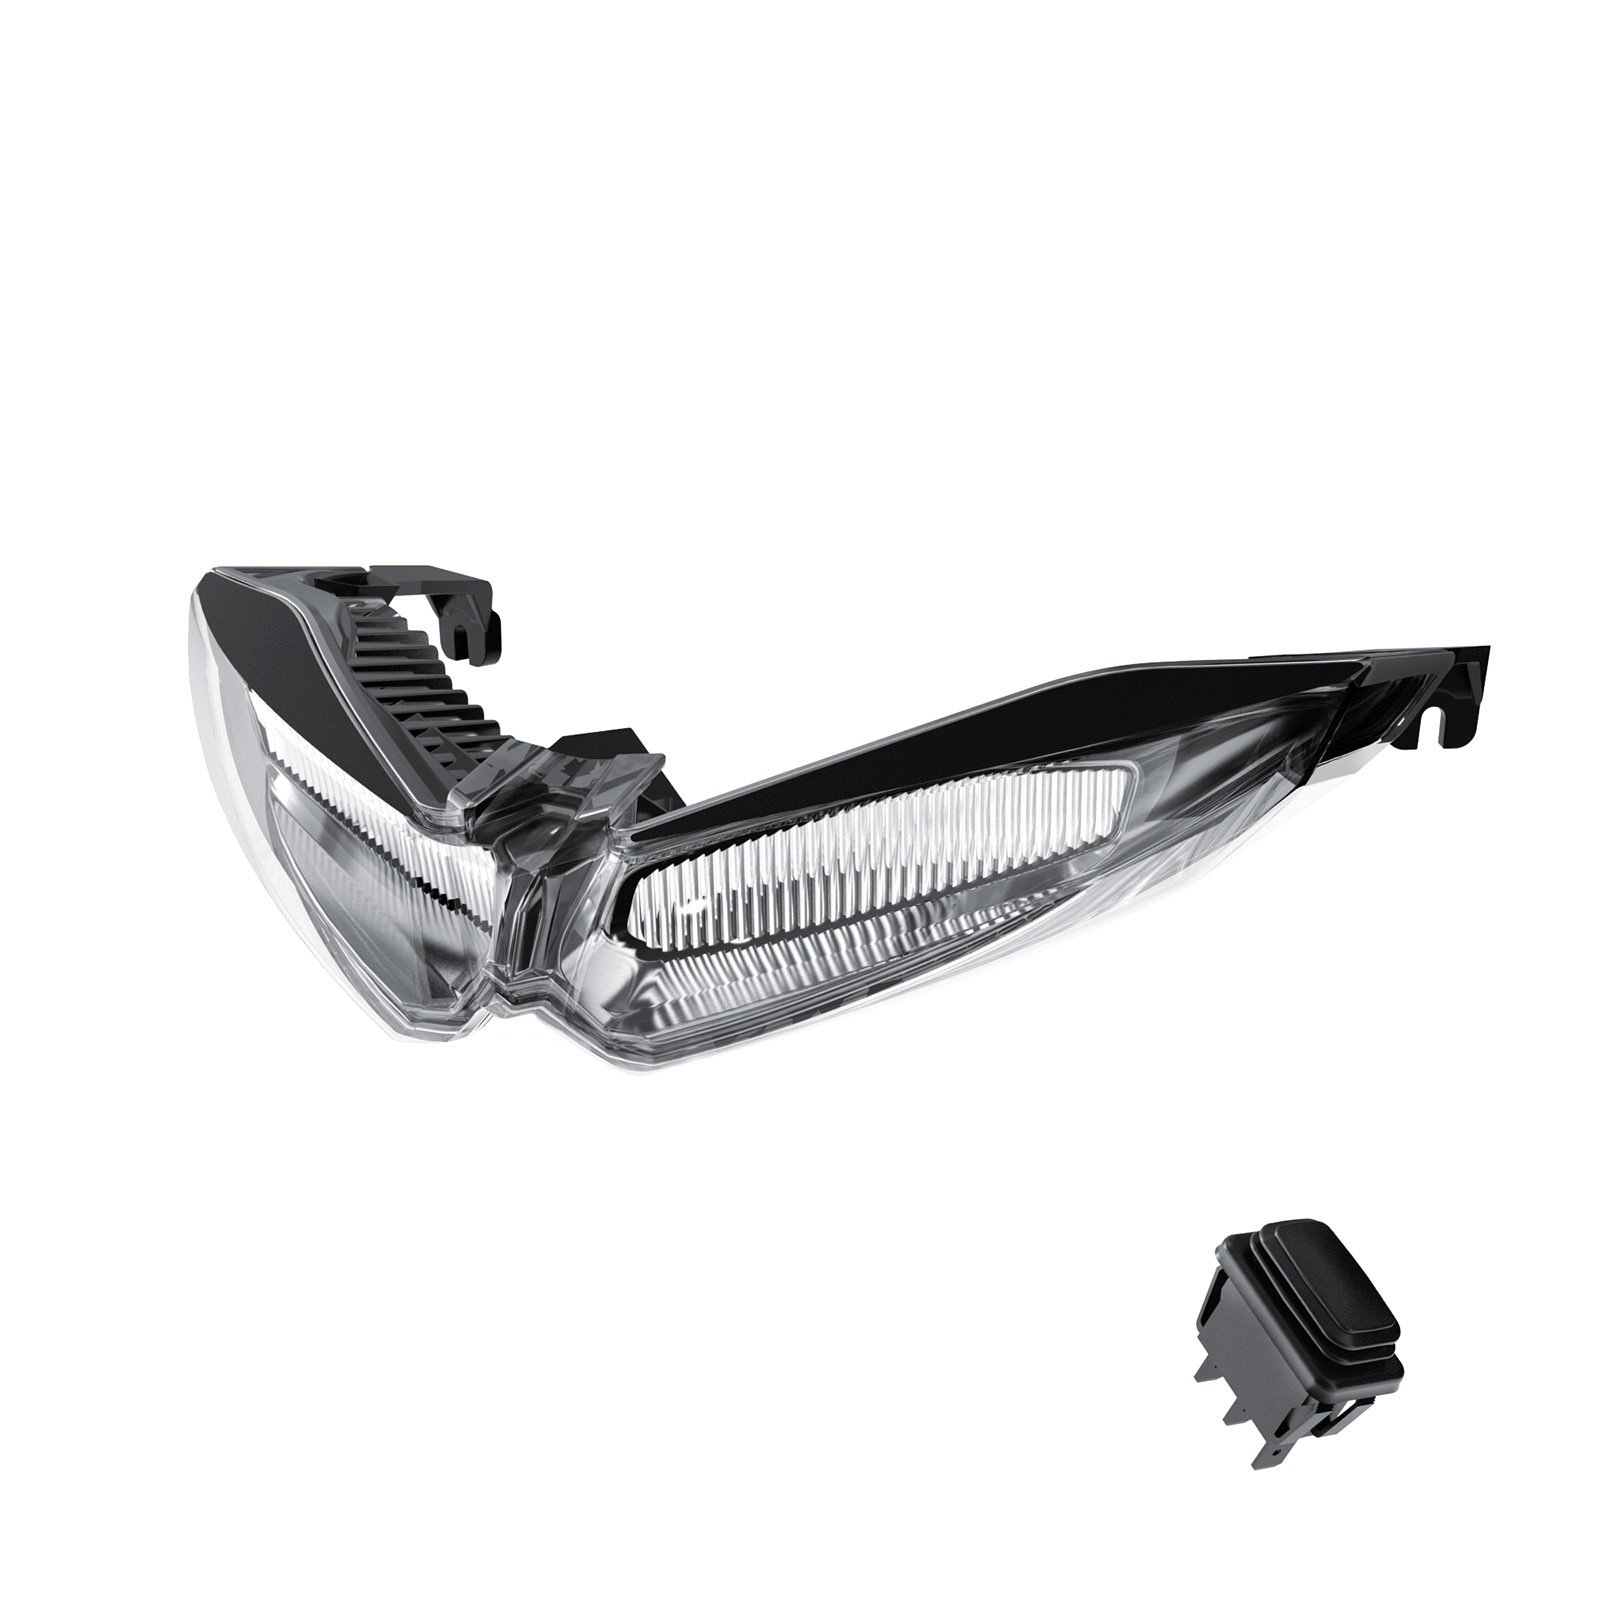 Ski-Doo Led Light Kit For REV-XM, REV-XS, except Expedition Sport, 860201235 by Ski-Doo